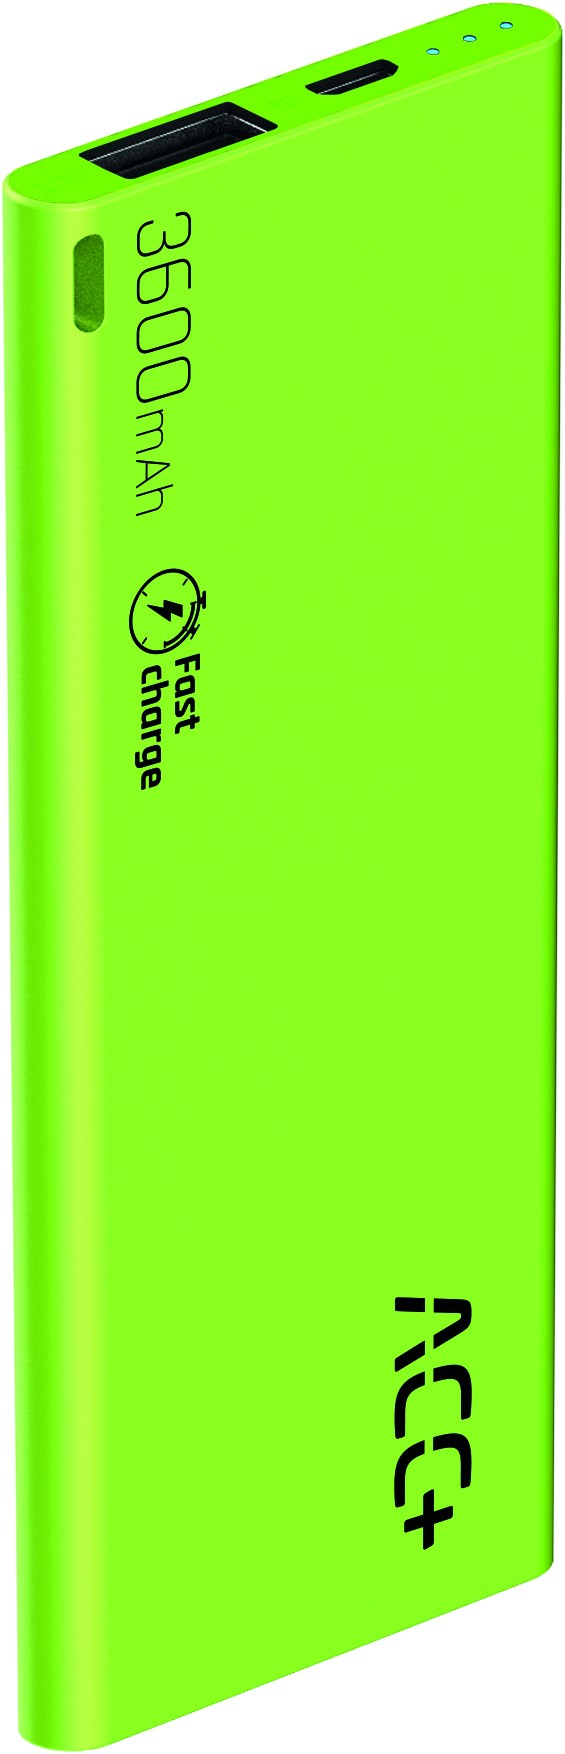 Power Bank ACC+ THIN 3600 mAh z systemem Fast Charge Zielony-img-2911